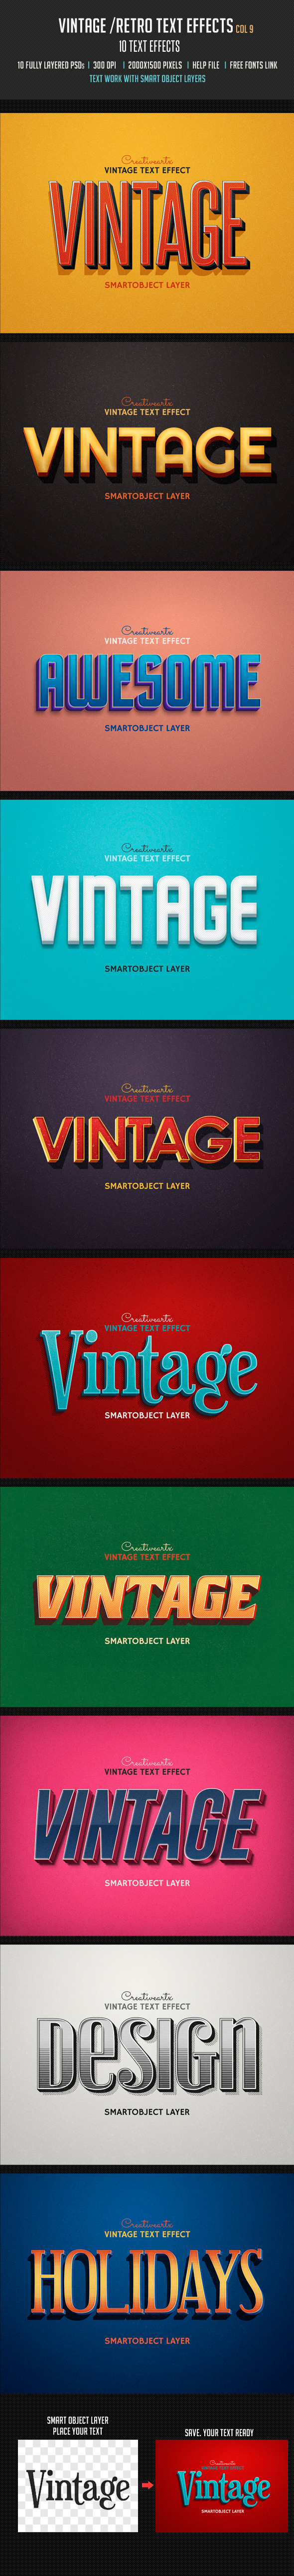 Vintage Retro Text Effects Col 9 - Text Effects Styles